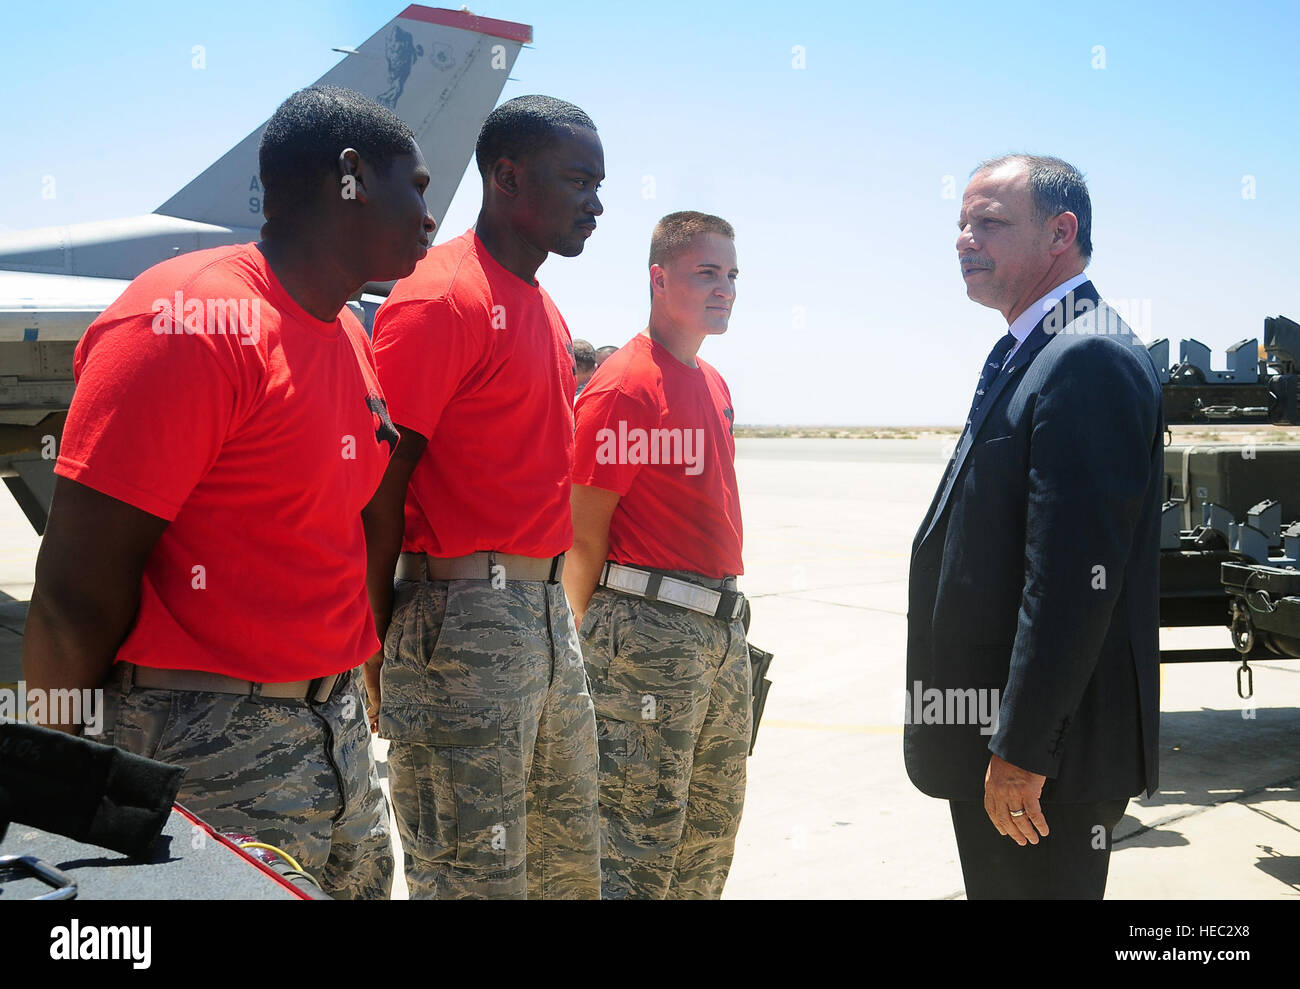 His Royal Highness Prince Feisal bin al-Hussein of Jordan greets U.S. Air Force Airmen 1st Class Travis Campbell - Stock Image